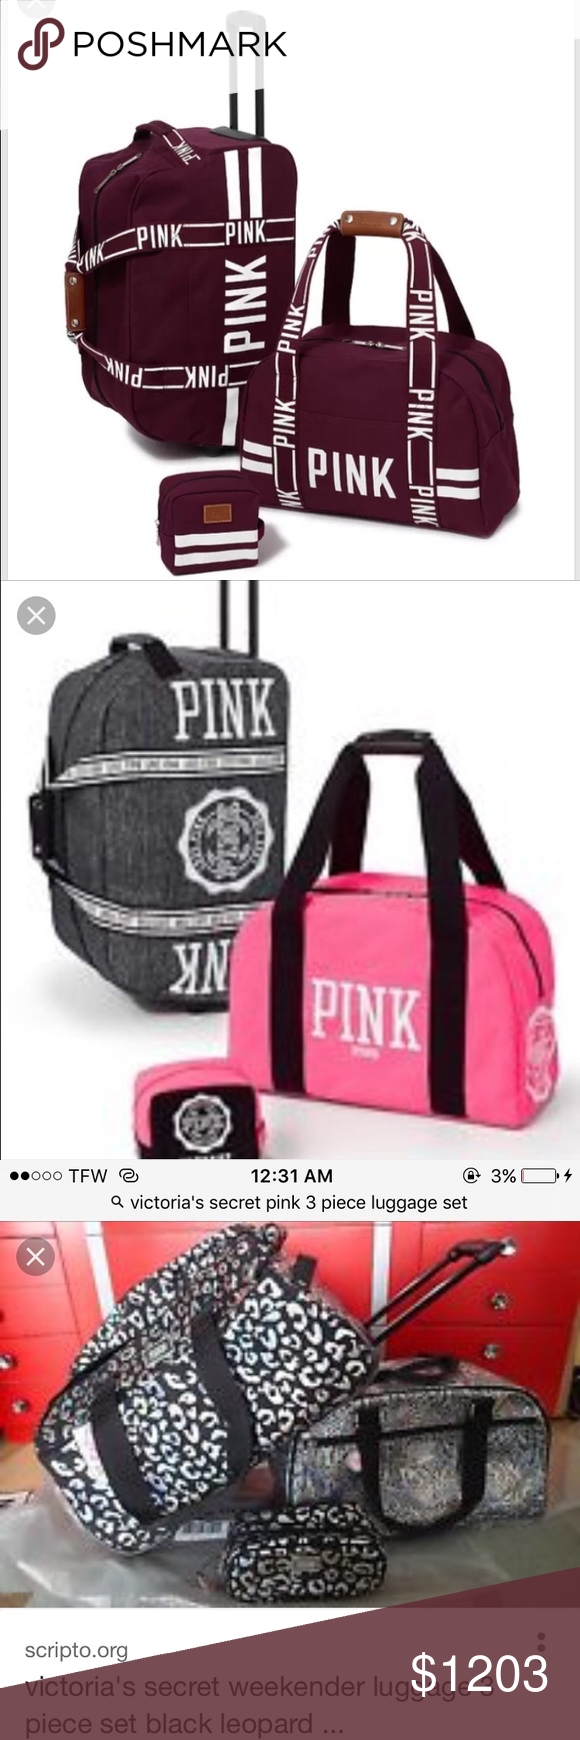 ISO Anyone have one of these three luggage sets? PINK Victoria's Secret Other